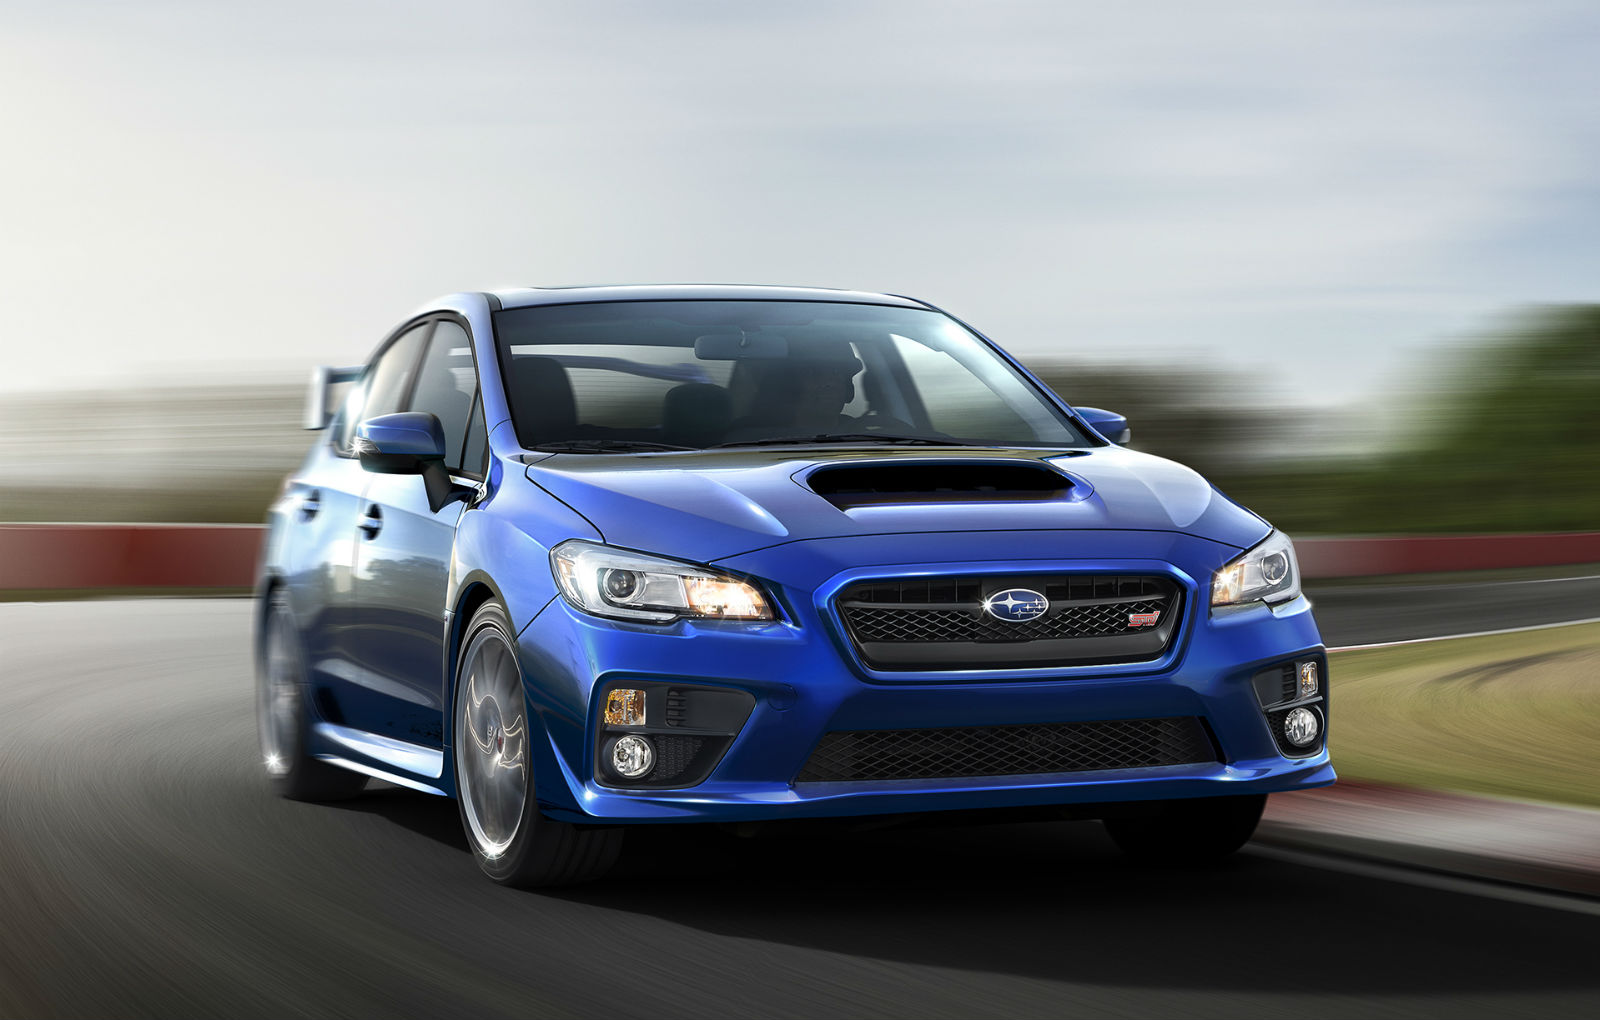 2015 Subaru WRX STI   Wallpaper Video Specs Info   Full details 1600x1020